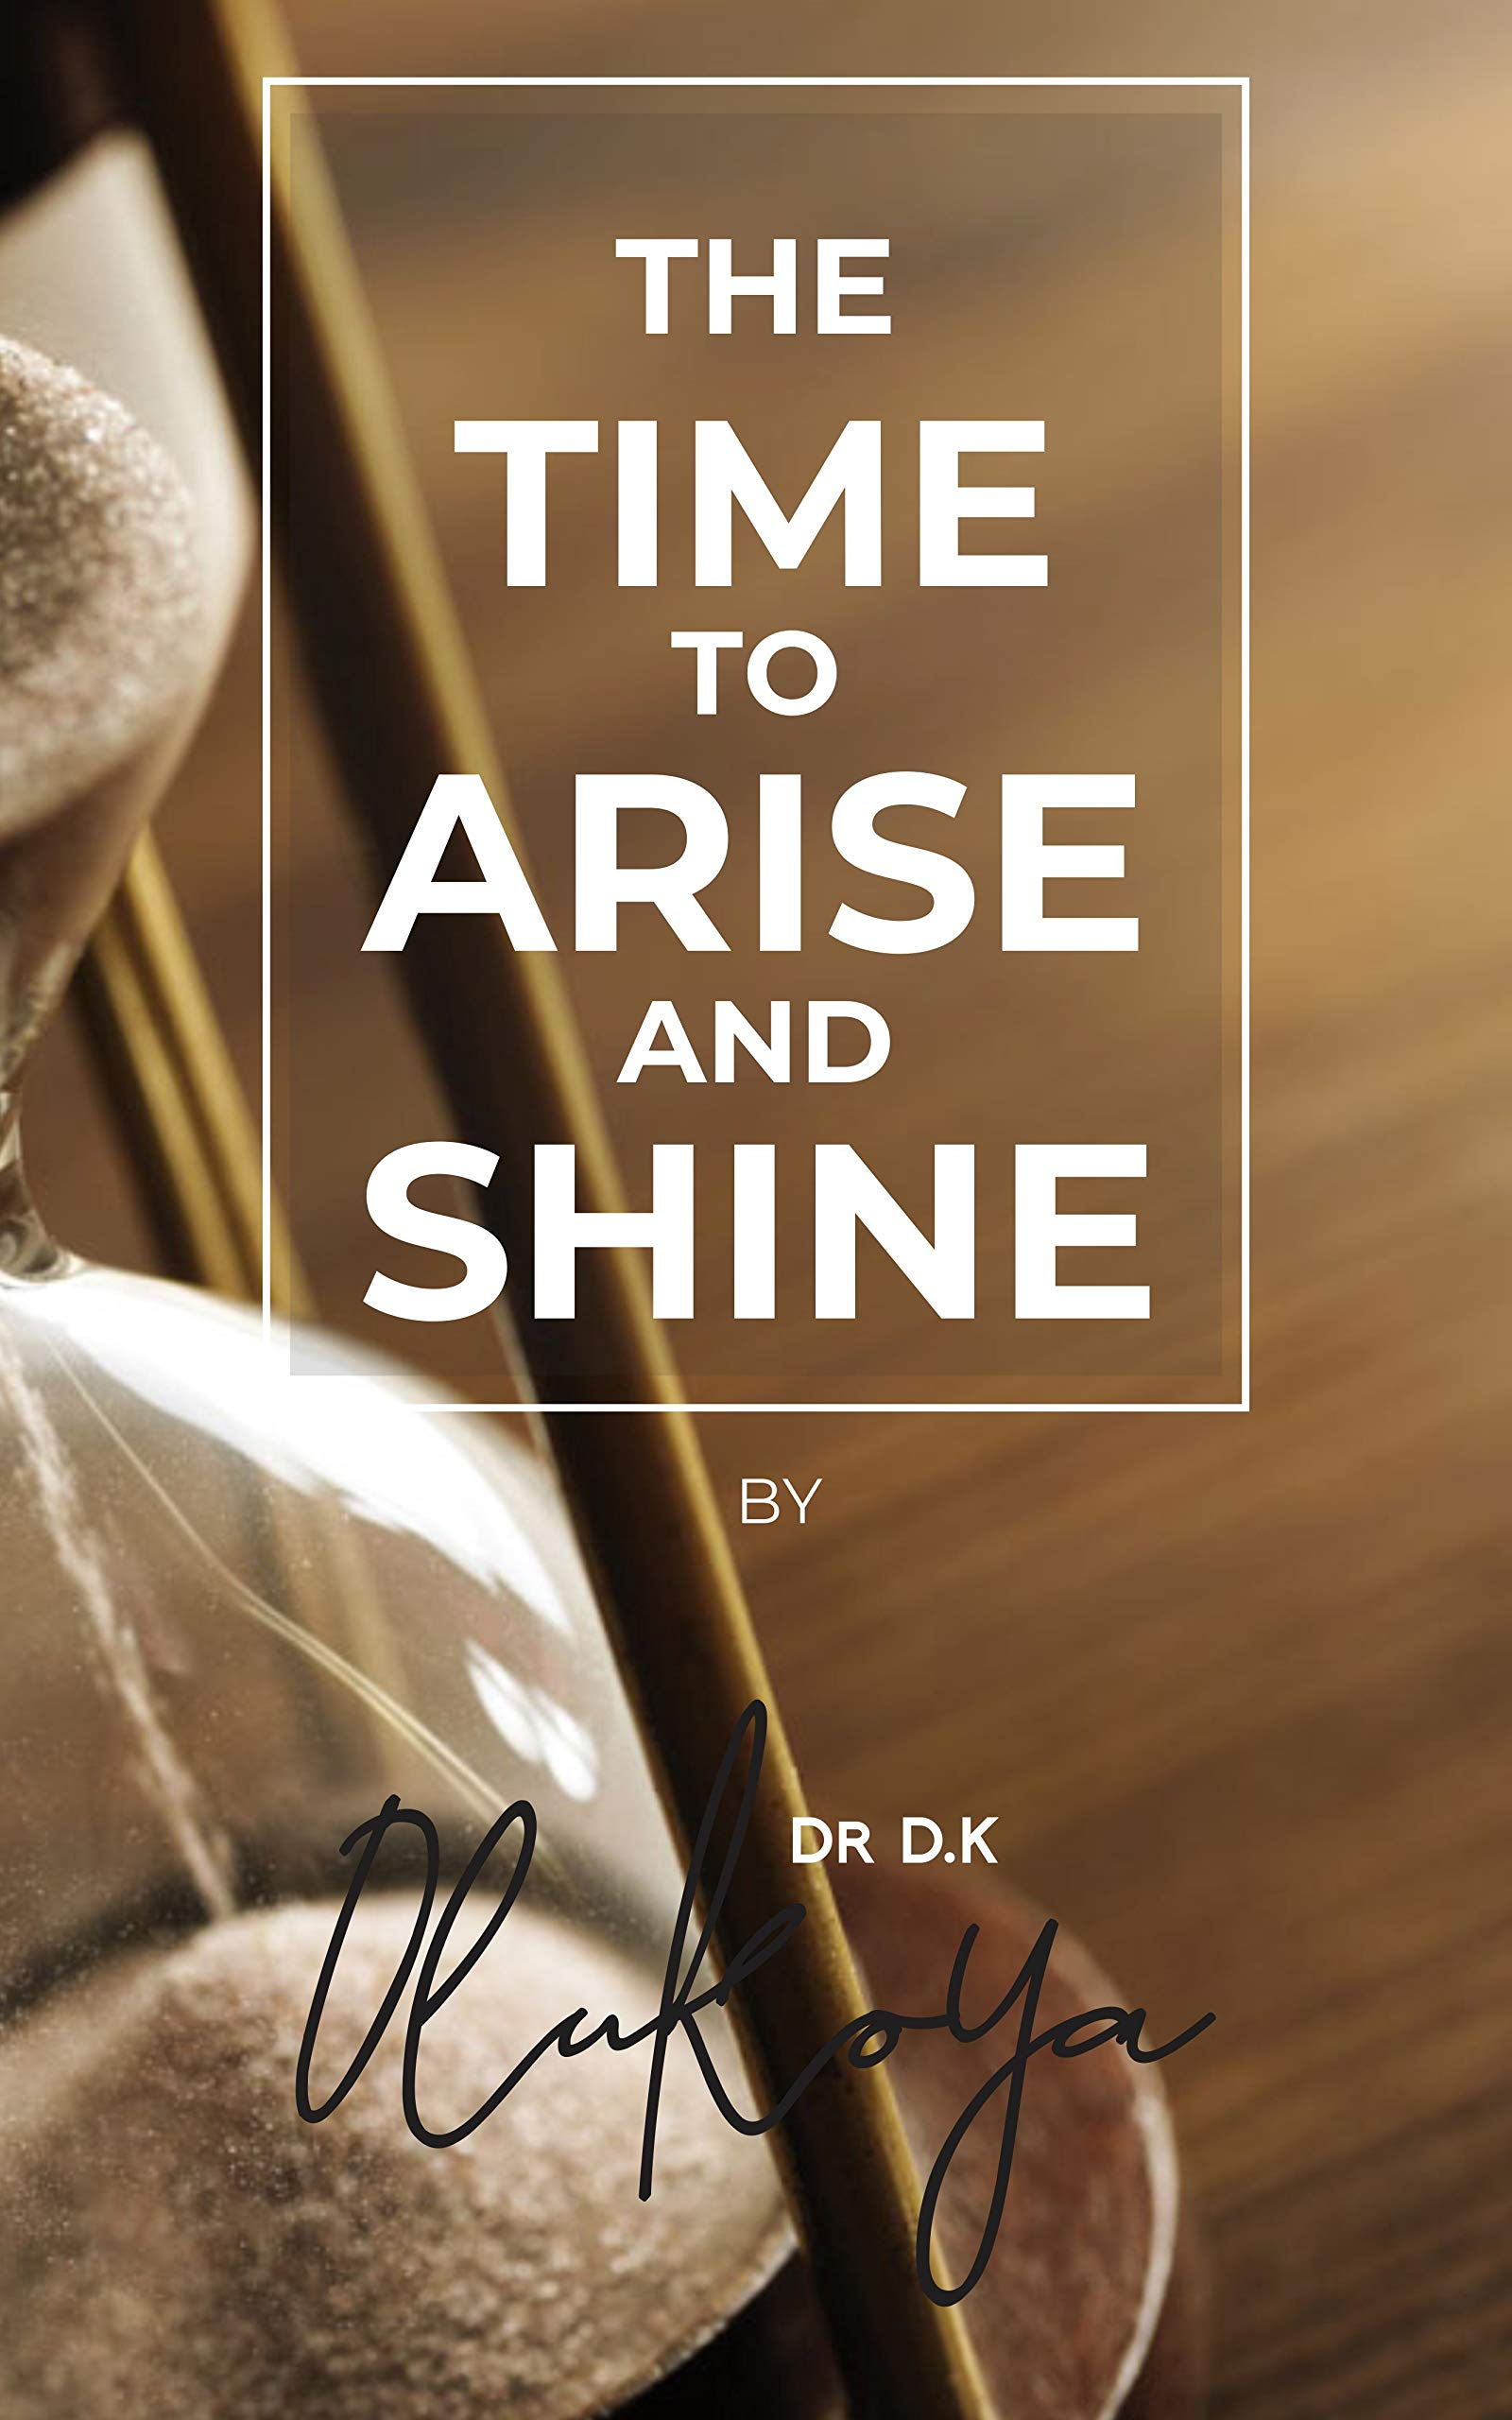 The Time to Arise and Shine